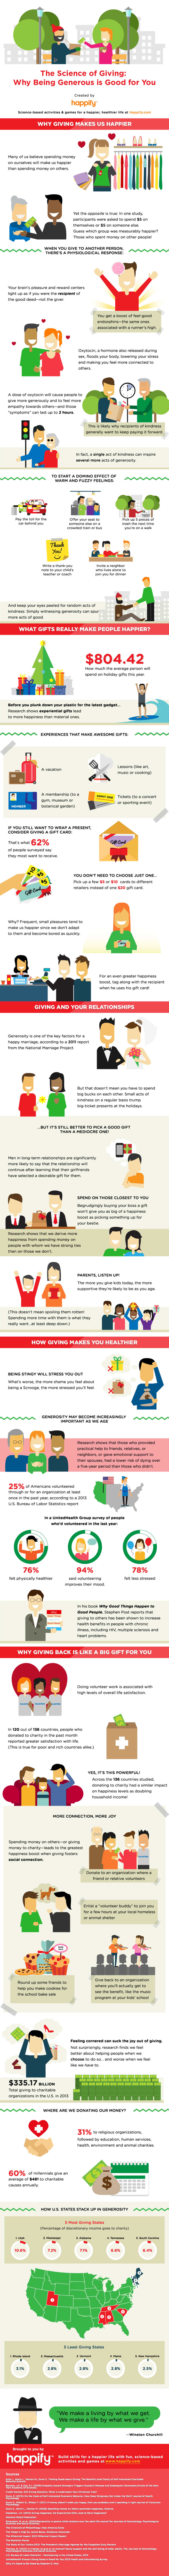 Why Being Generous Is So Good For You (Infographic)